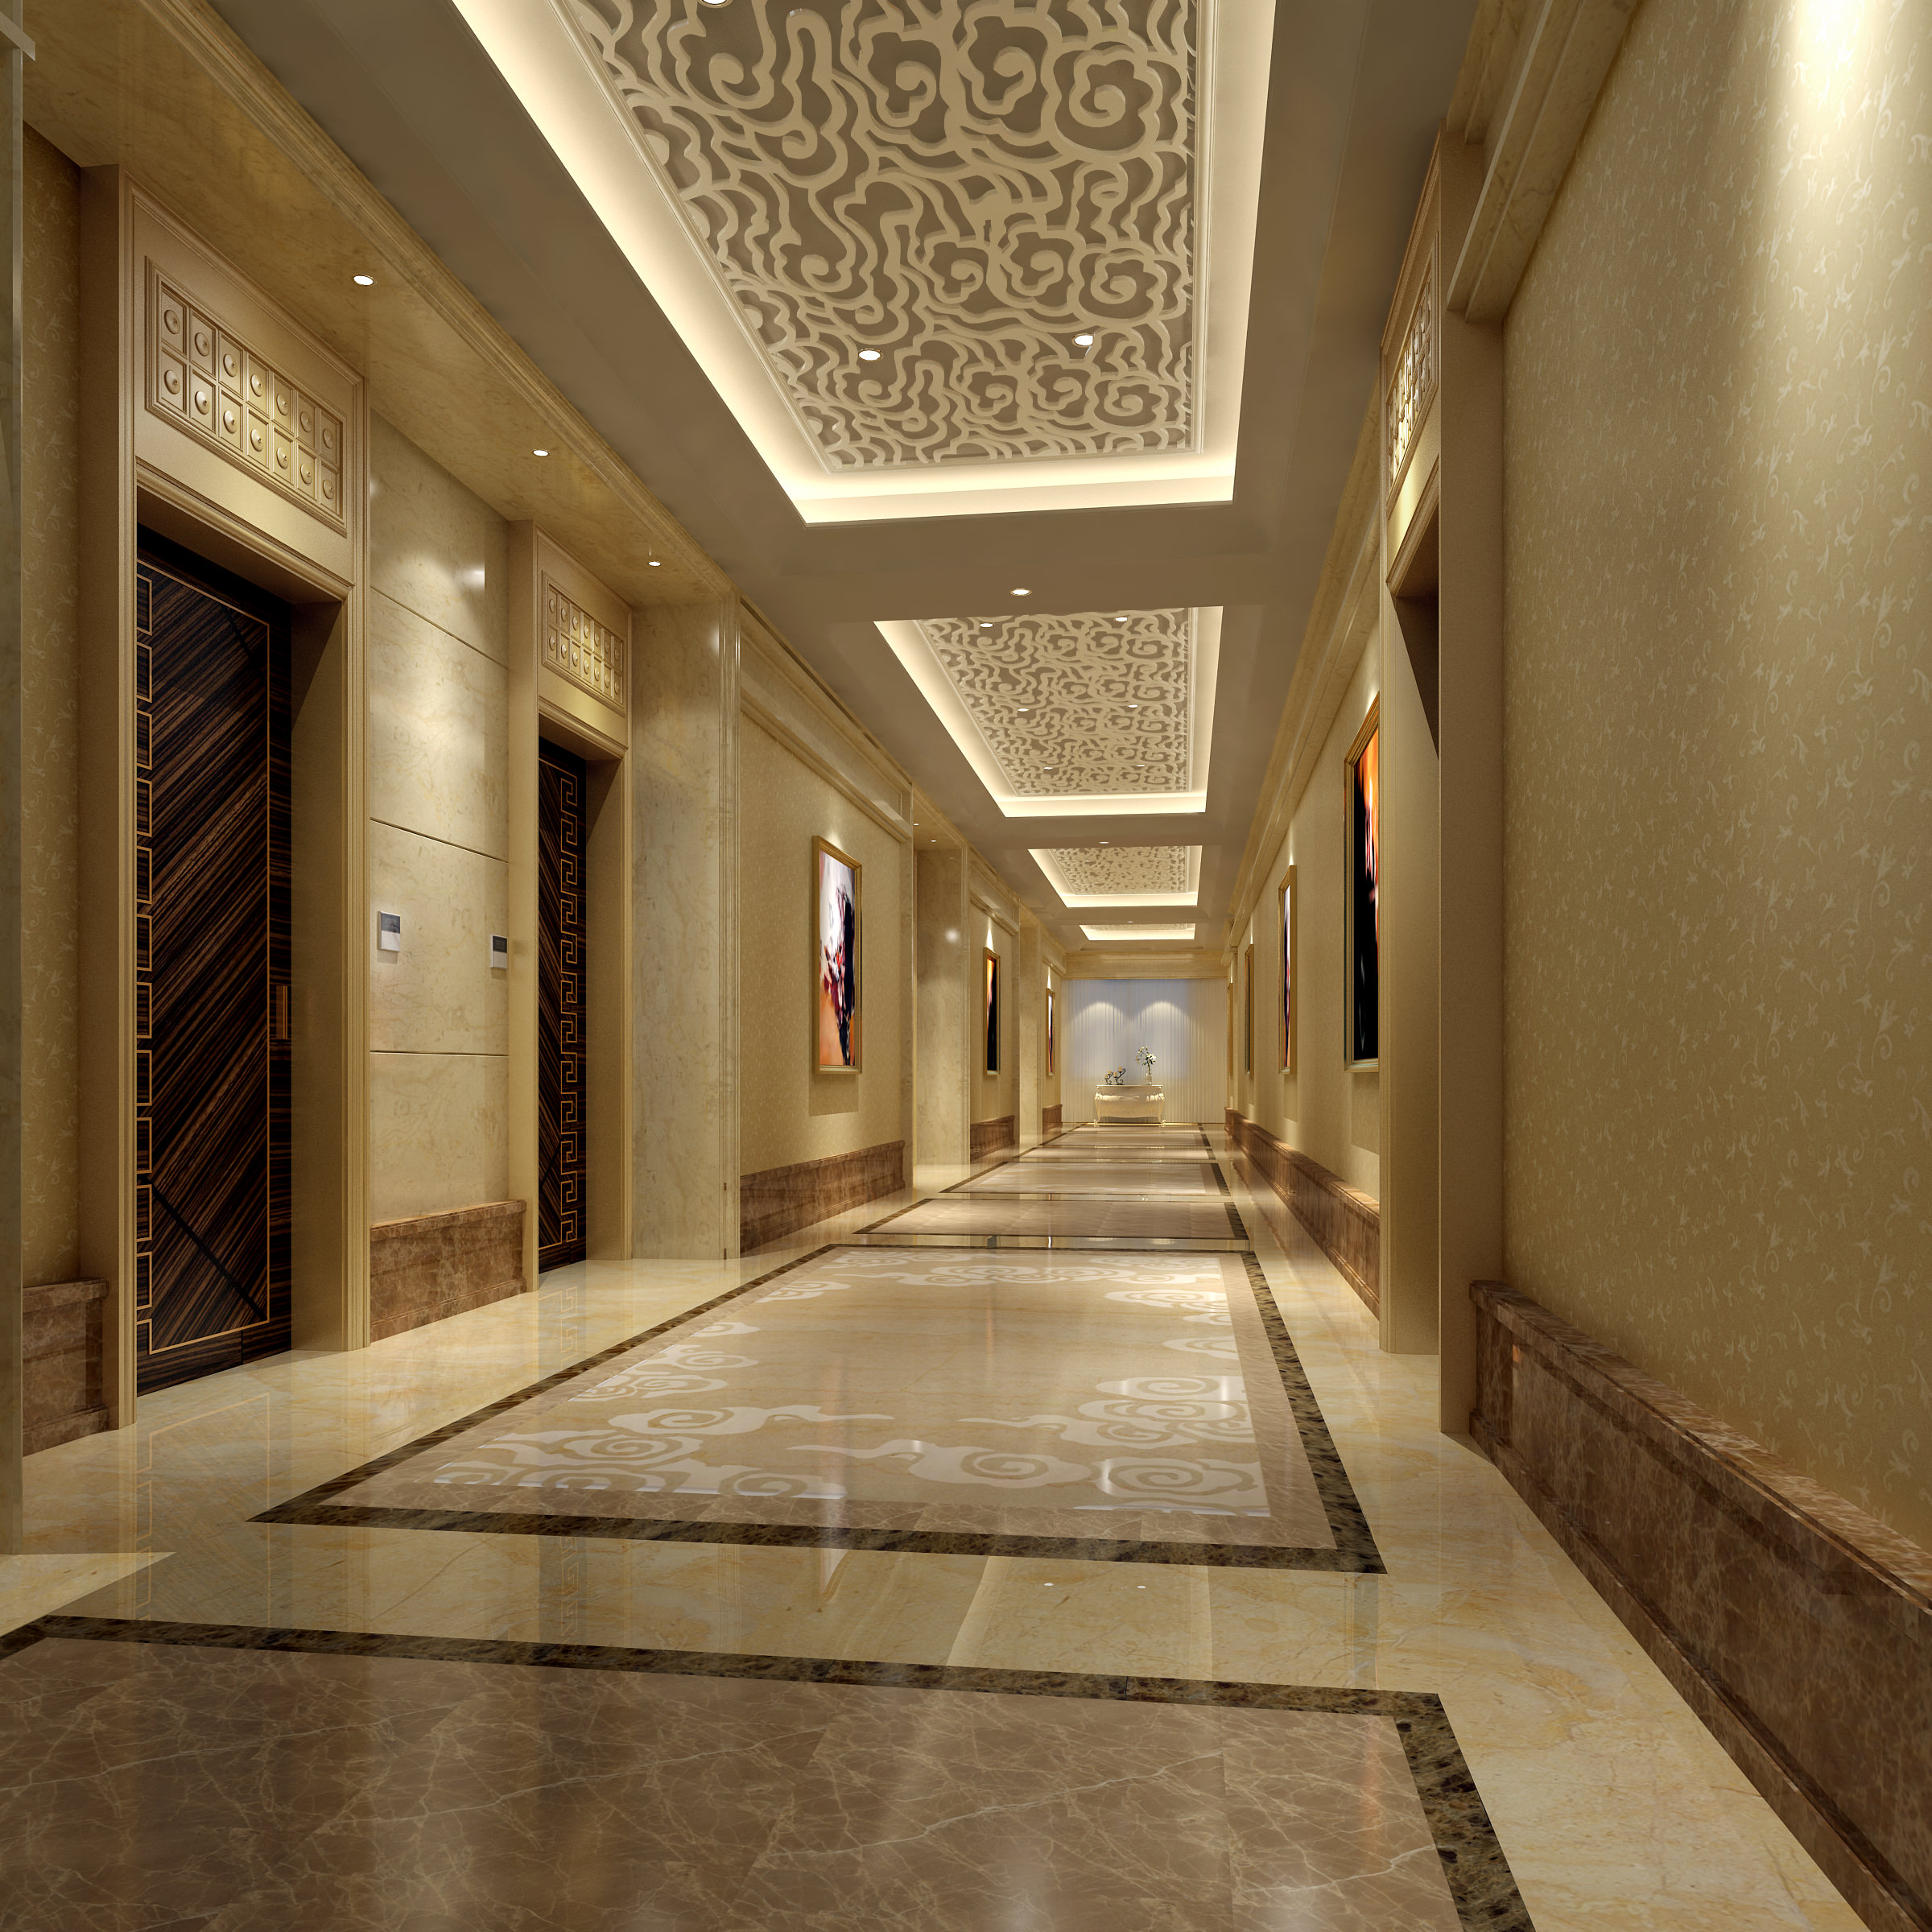 Luxurious corridor with lifts 3d model max - Corridor entrance ...